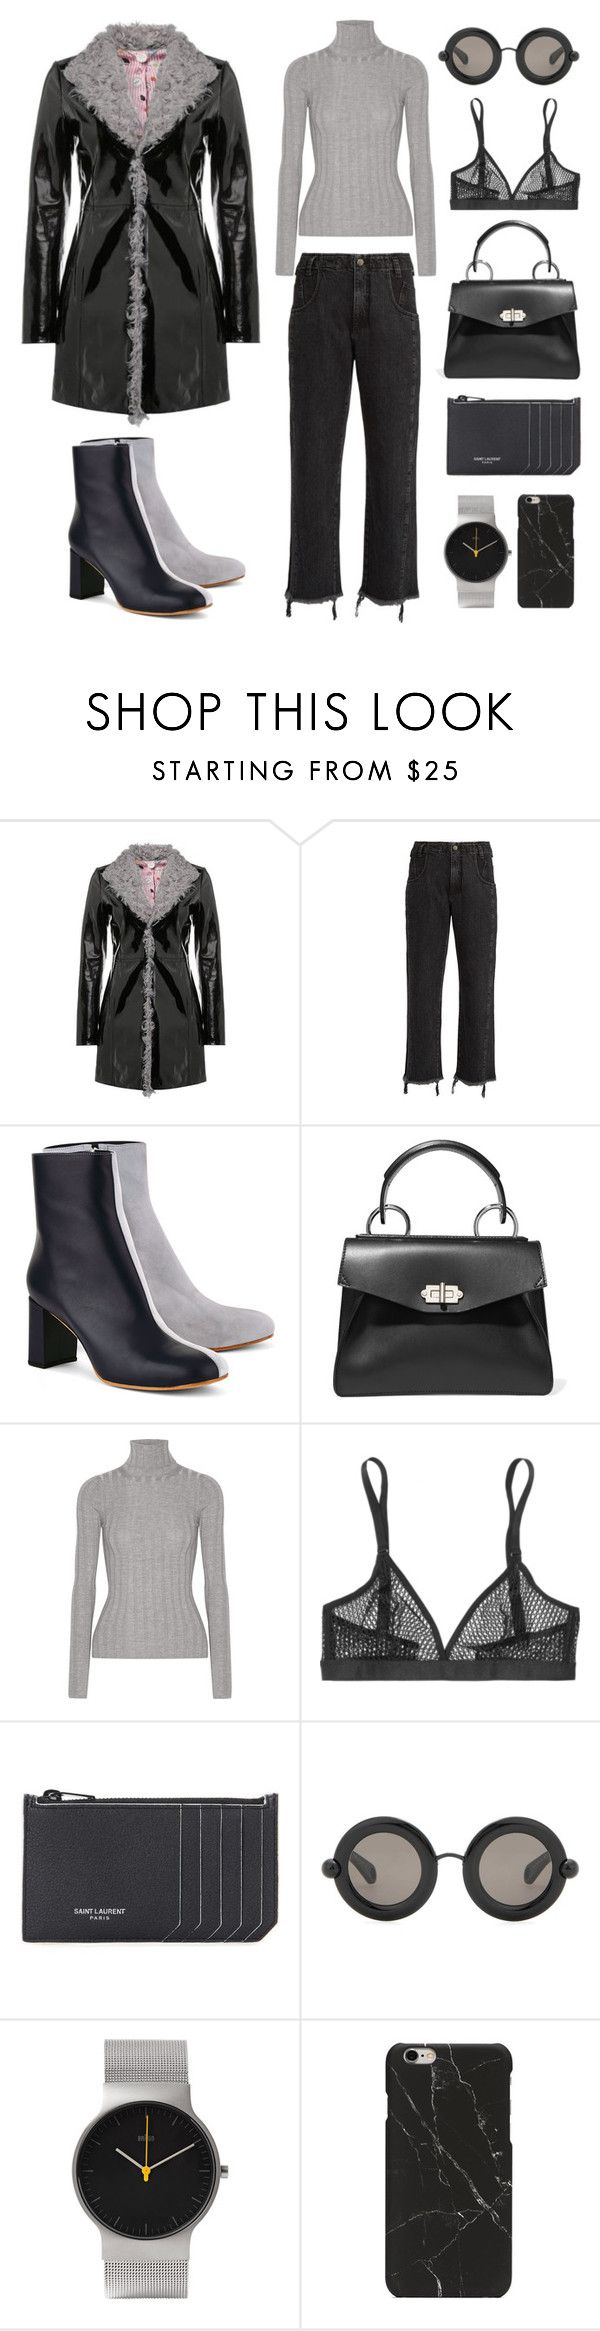 """Unbenannt #792"" by fashionlandscape ❤ liked on Polyvore featuring Rachel Comey, Maryam Nassir Zadeh, Proenza Schouler, Acne Studios, Wolford, Yves Saint Laurent, Christopher Kane and Braun"